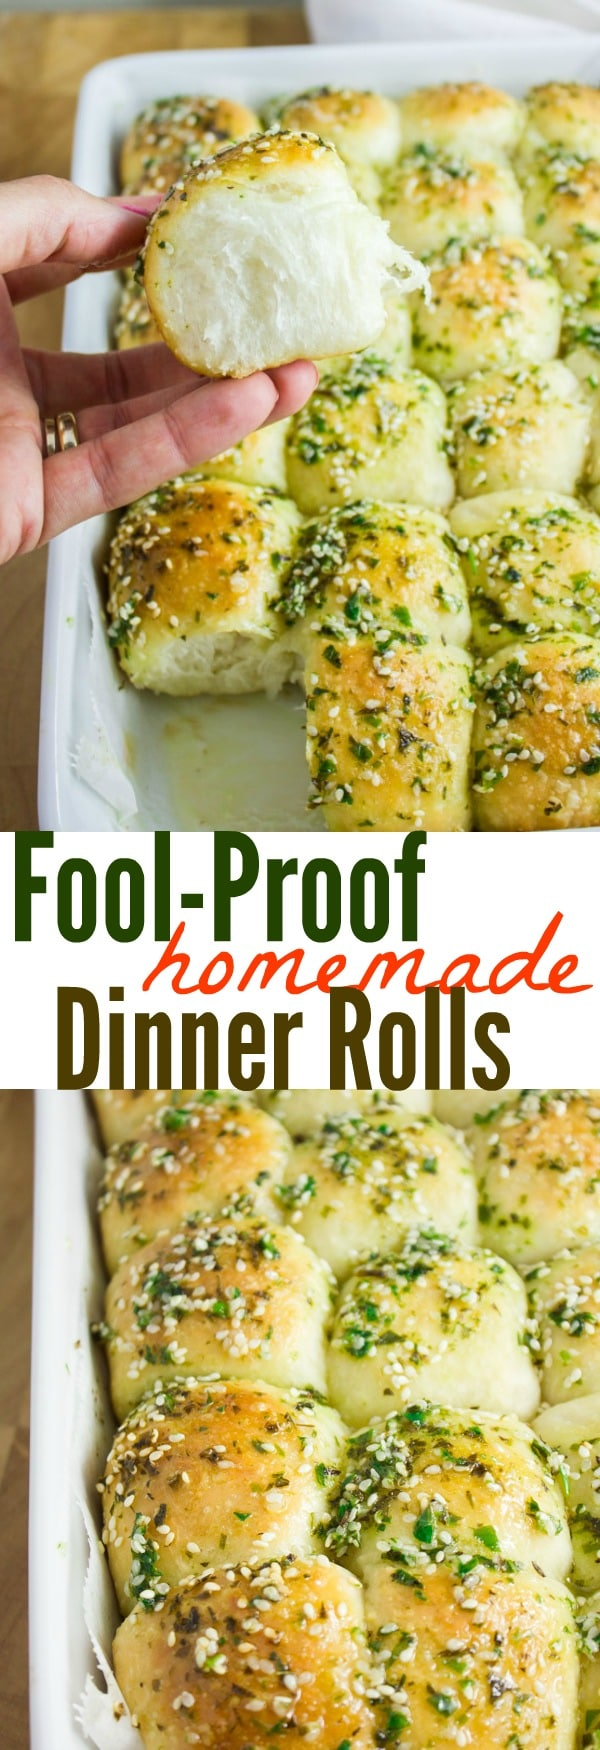 Fool-Proof Homemade Dinner Rolls | Make these Homemade Dinner Rolls once and you will never reach for any other bread recipe! These are soft, pillowy fluffy and you can season them with different herbs, cheese, or spices to get a completely different flavor every single time! The easiest and most versatile bread dough out there! #bread, #rolls, #baking, #easy, #side